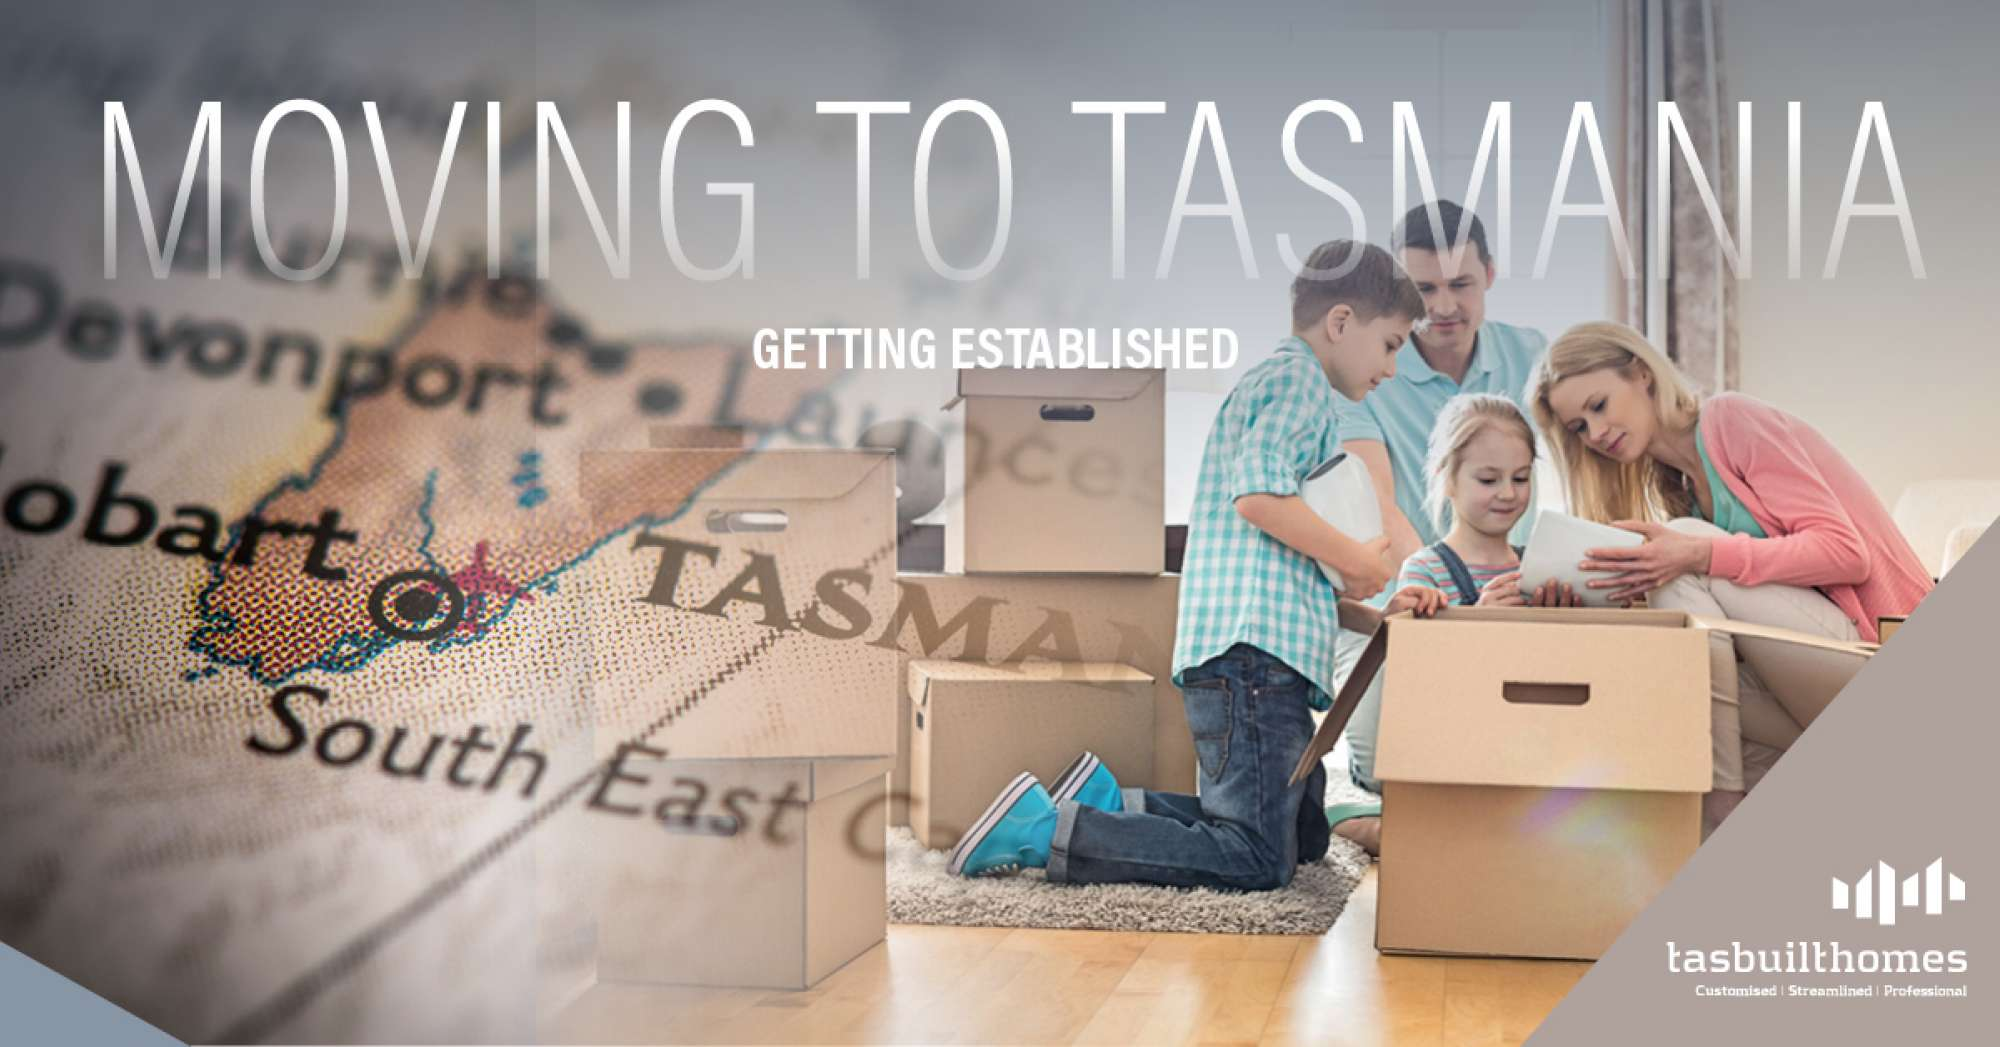 Moving-to-tasmania-getting-established